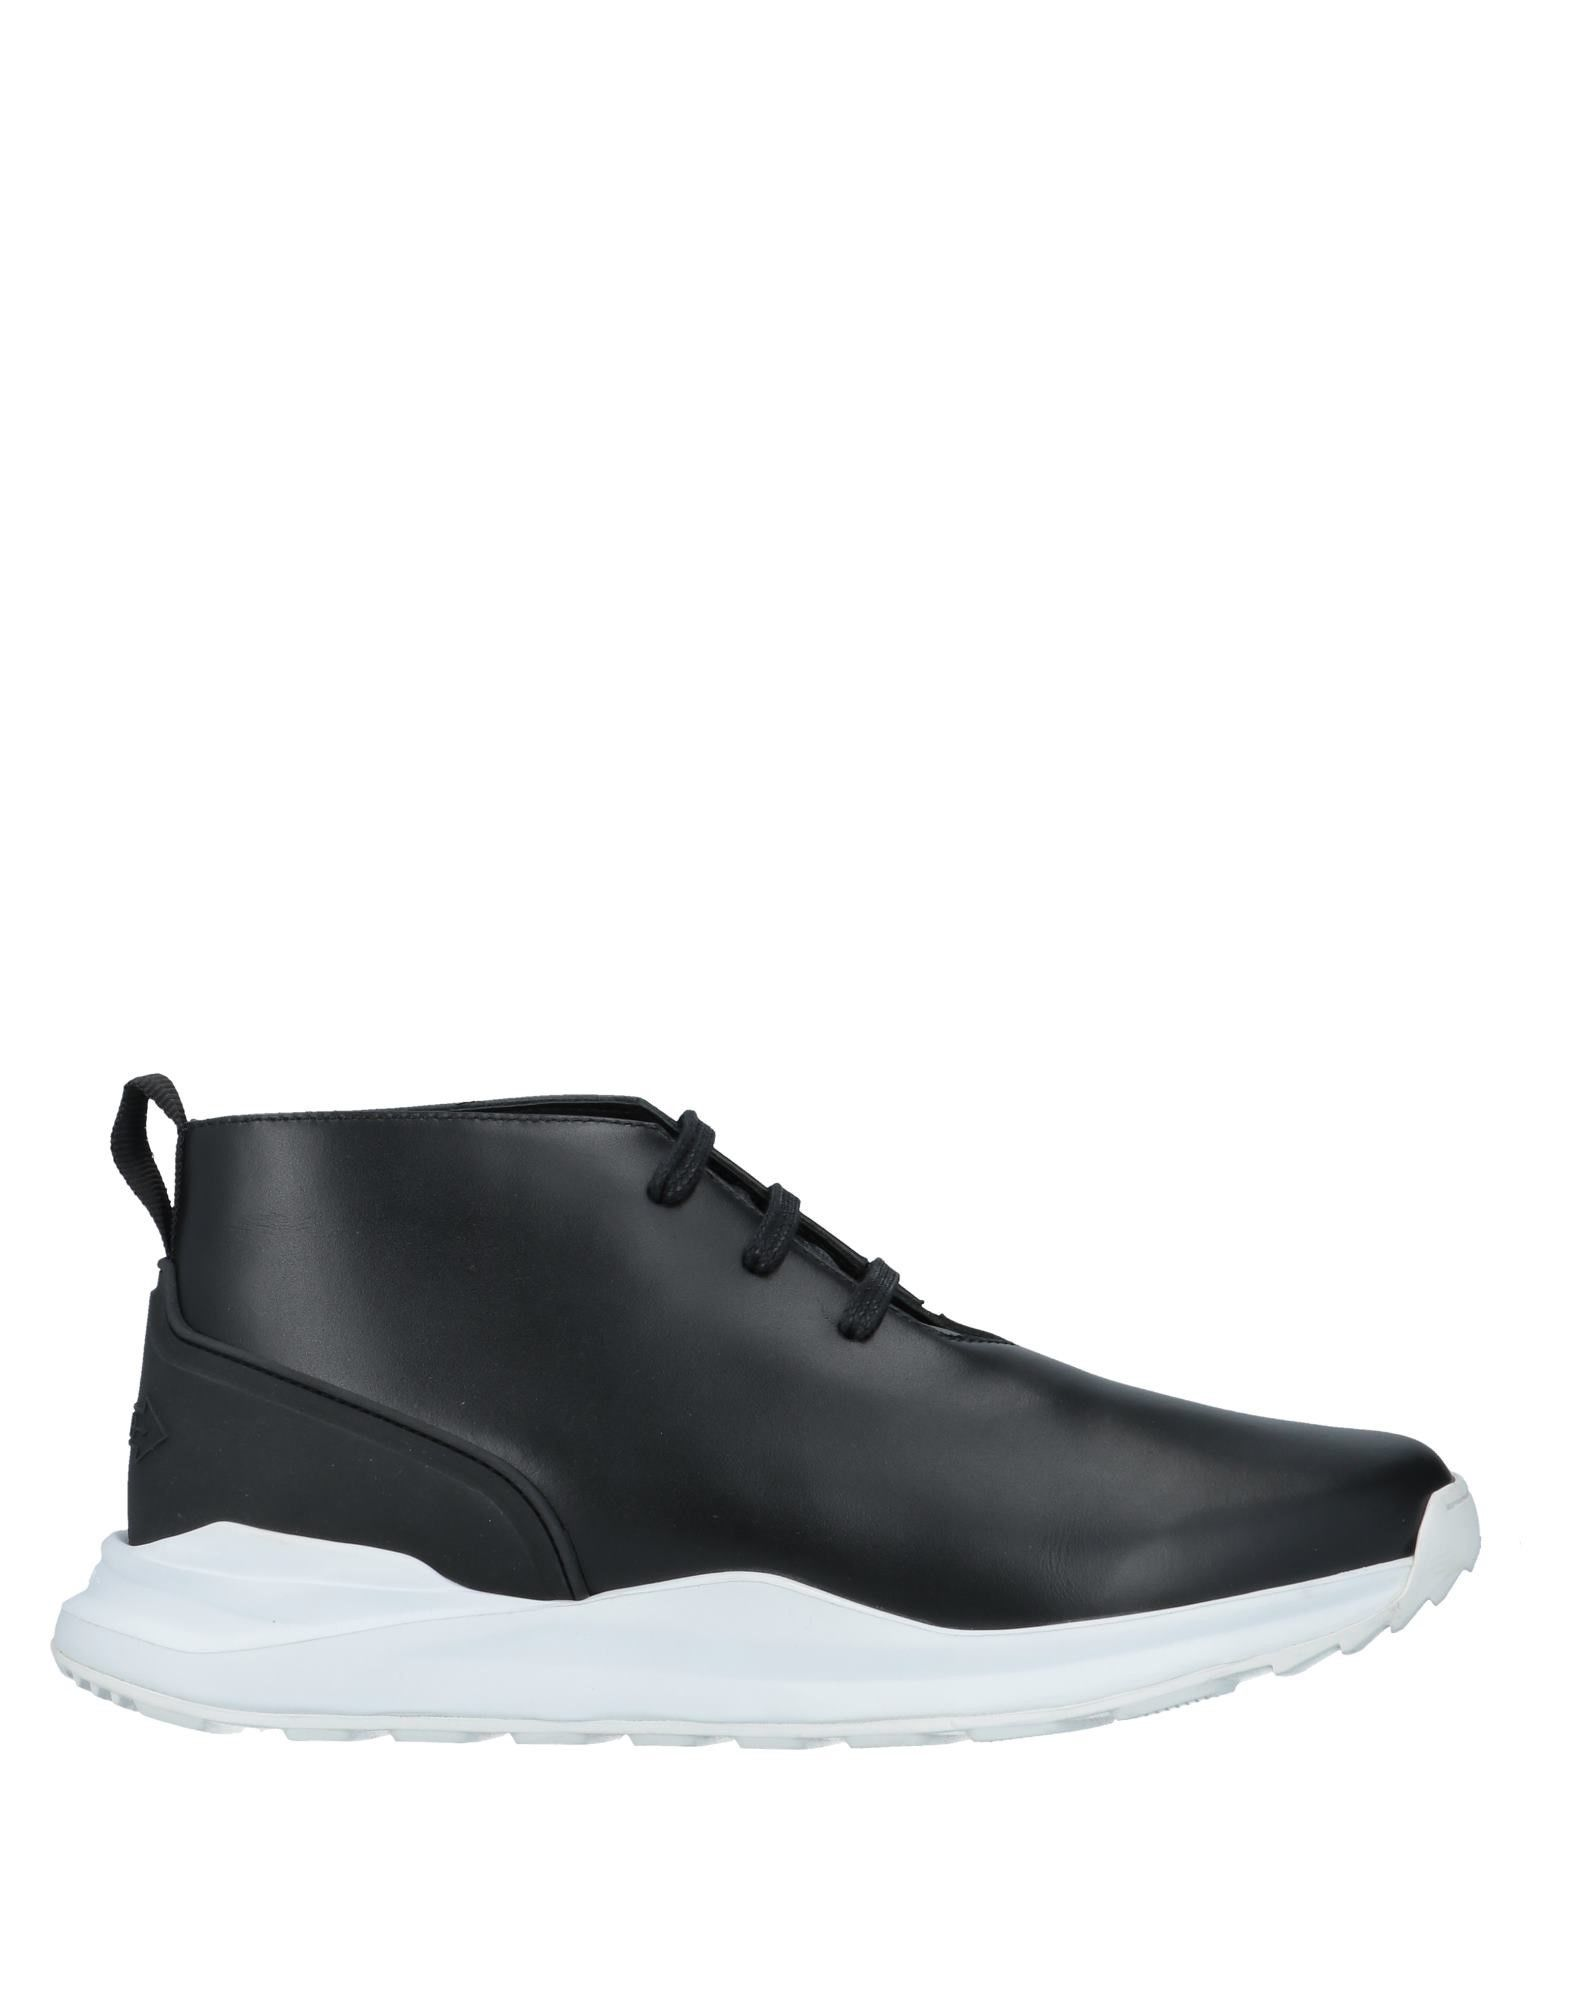 Turnscarpe Turnscarpe Turnscarpe Rick Owens uomo - 11729566AS 72d